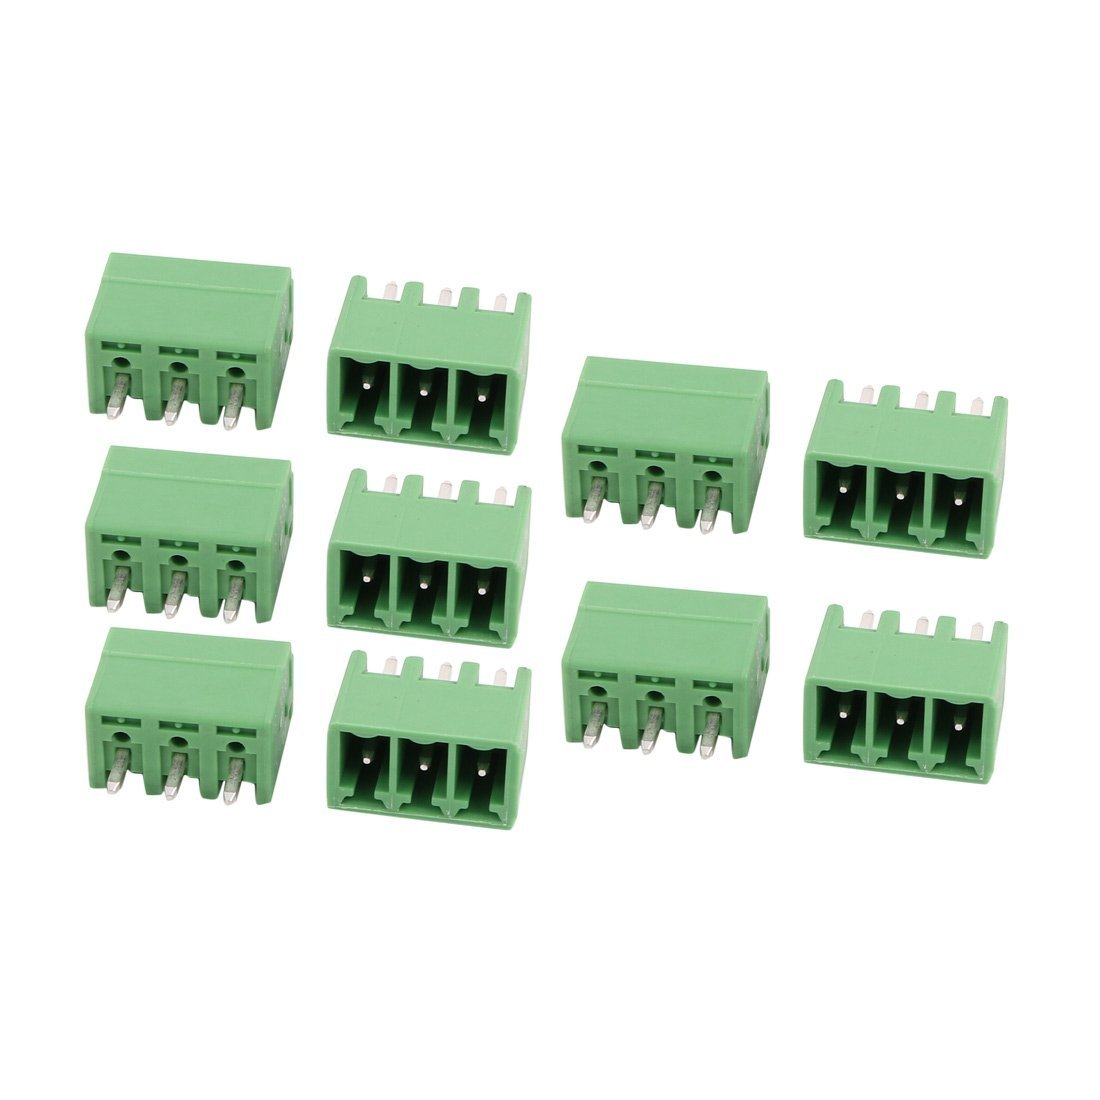 uxcell 10Pcs AC300V 8A 3.81mm Pitch 3P Terminal Block Wire Connection for PCB Mounting